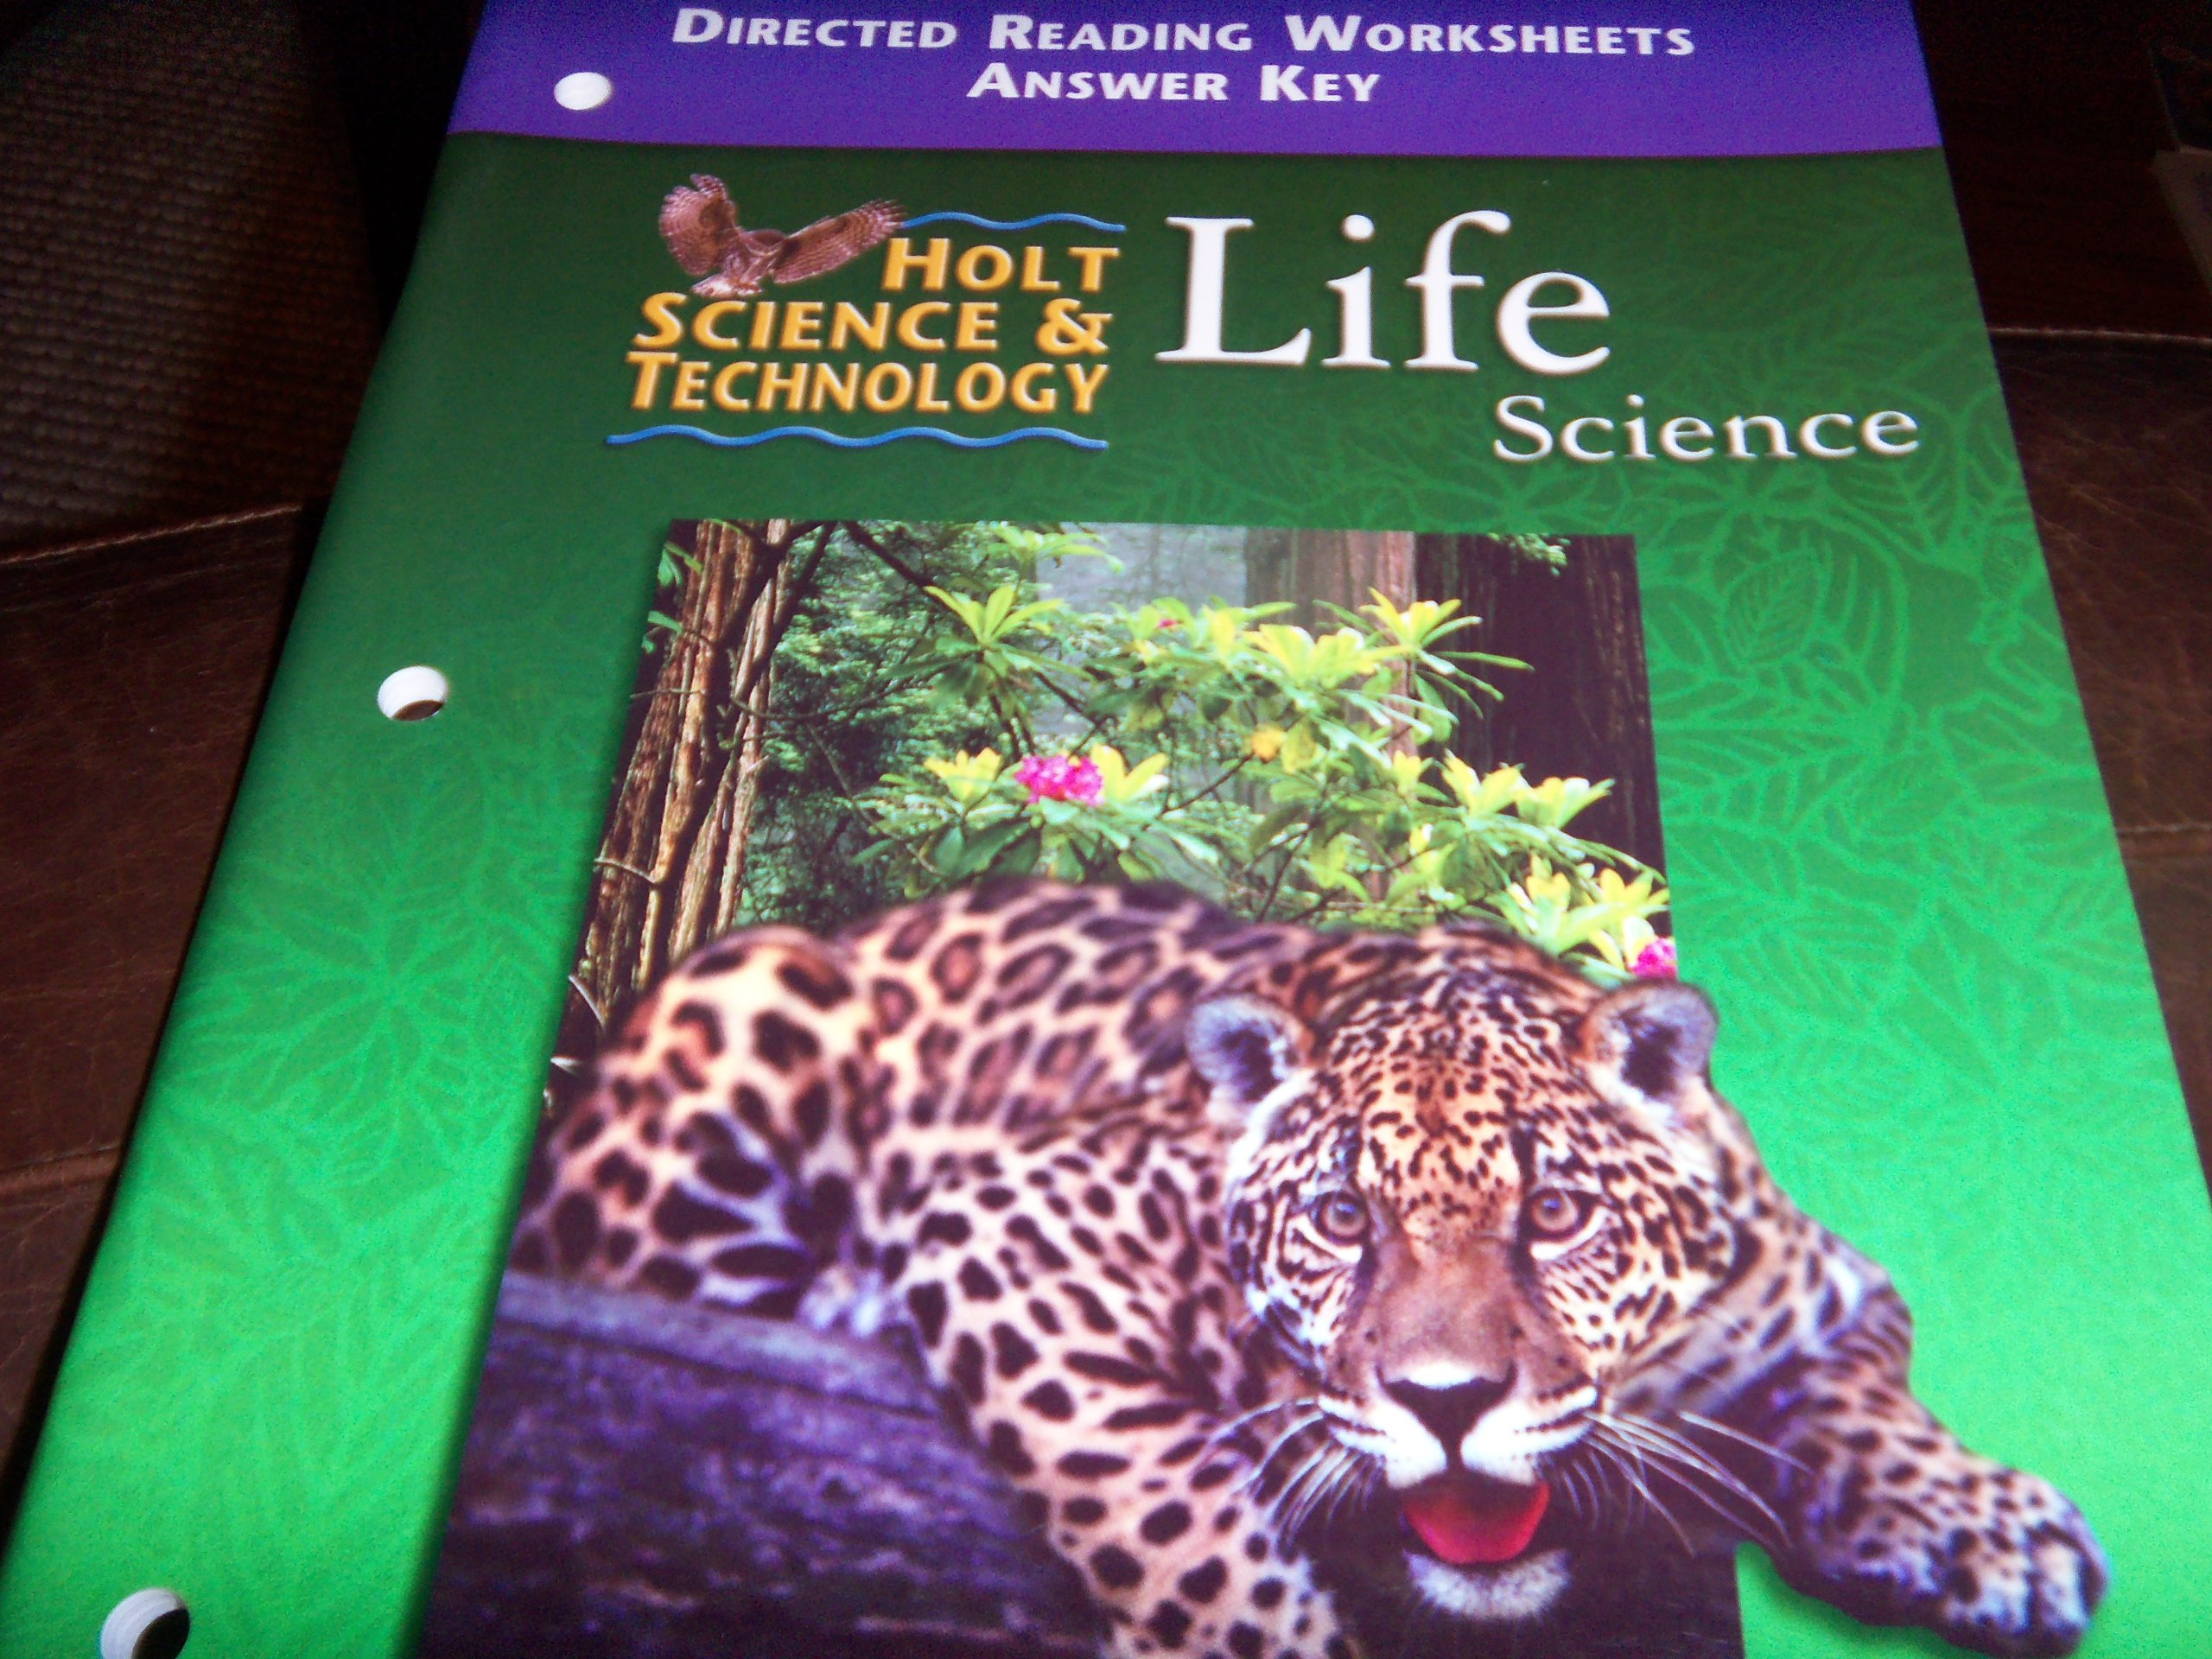 Holt Science And Technology 2001 Life Directed Reading Worksheets